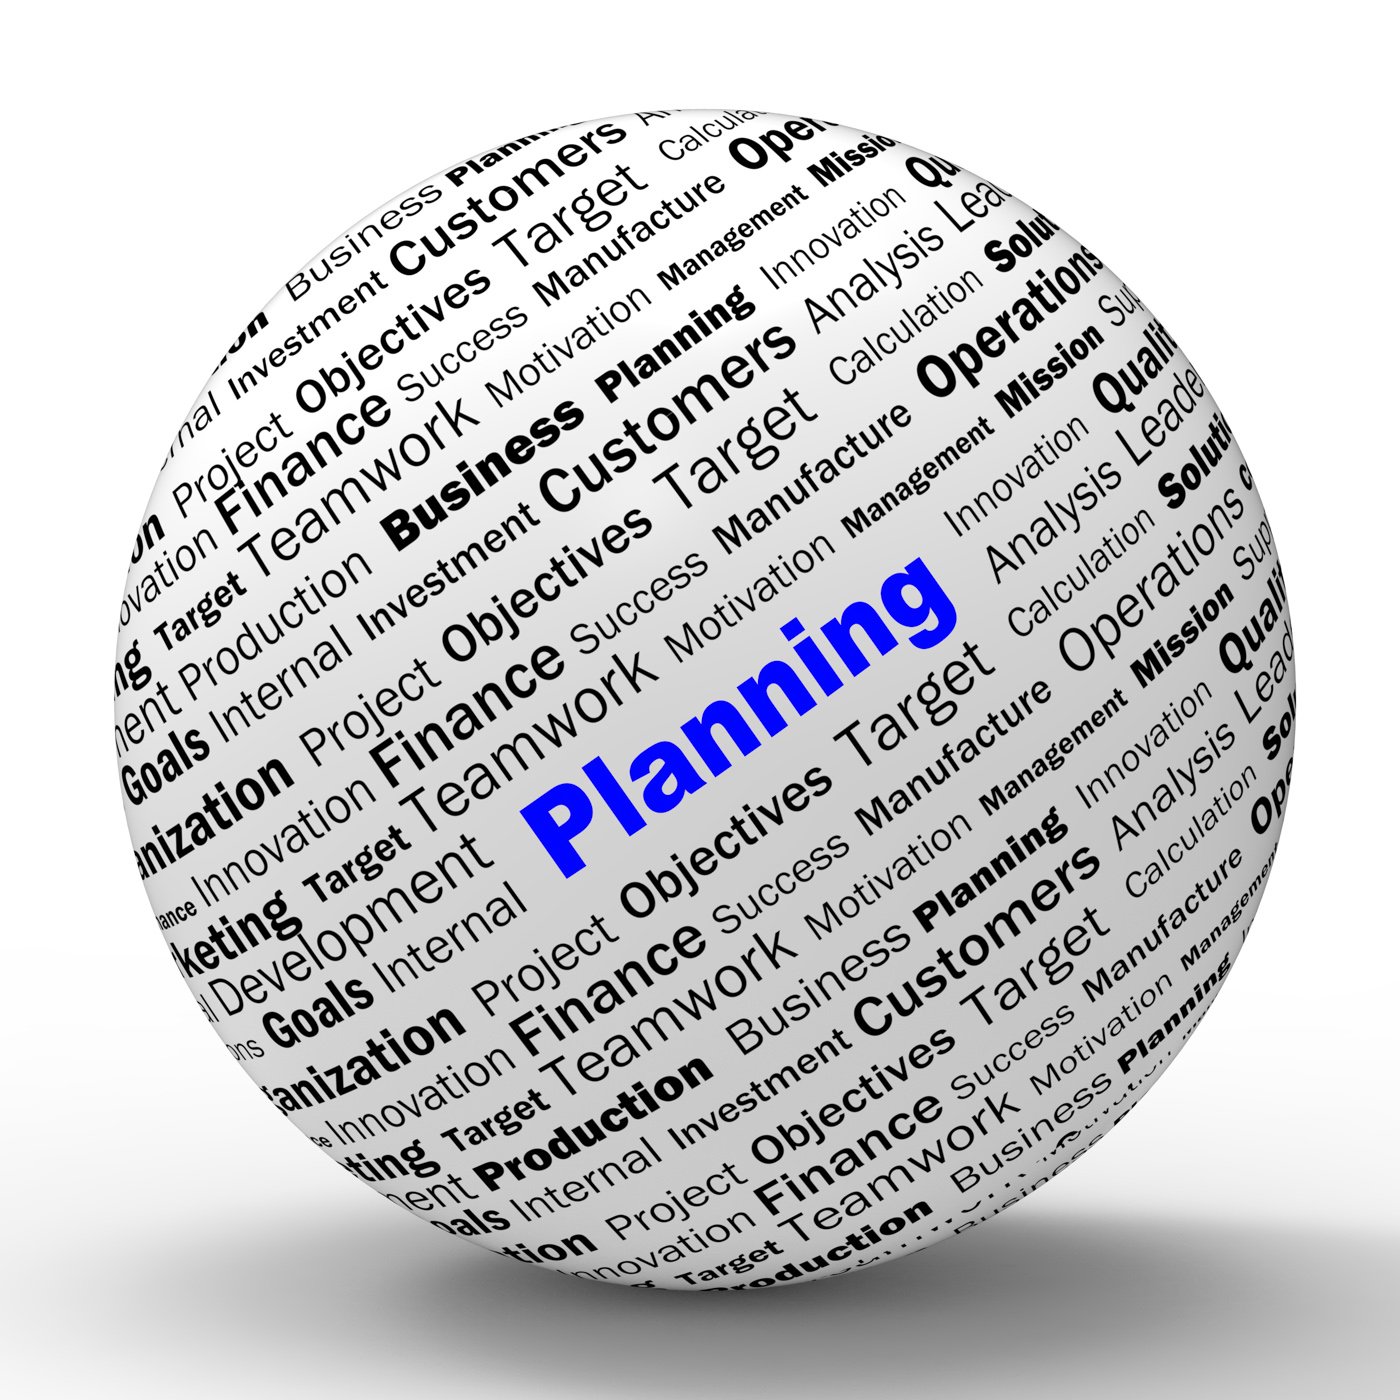 Planning sphere definition means mission planning or objectives photo